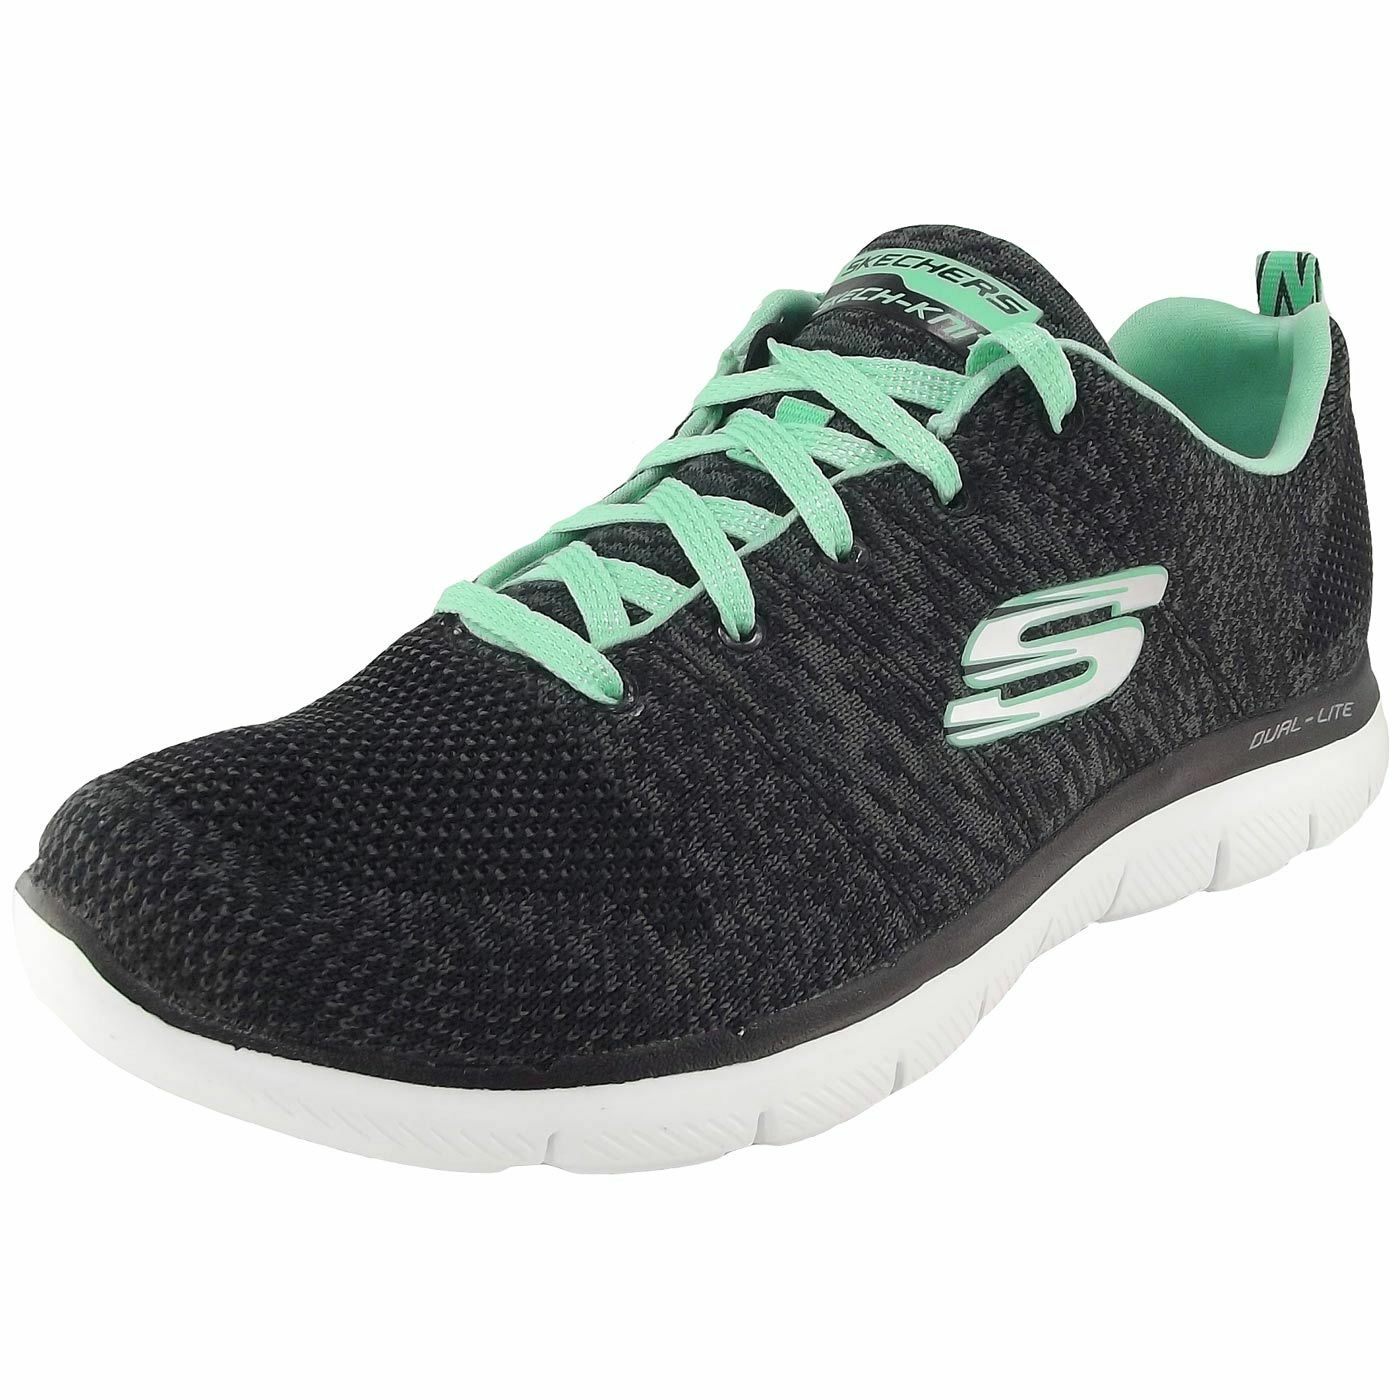 Skechers Flex Bppeal 2.0 High Energy Damen Sneaker schwarz/türkis (black/aqua)